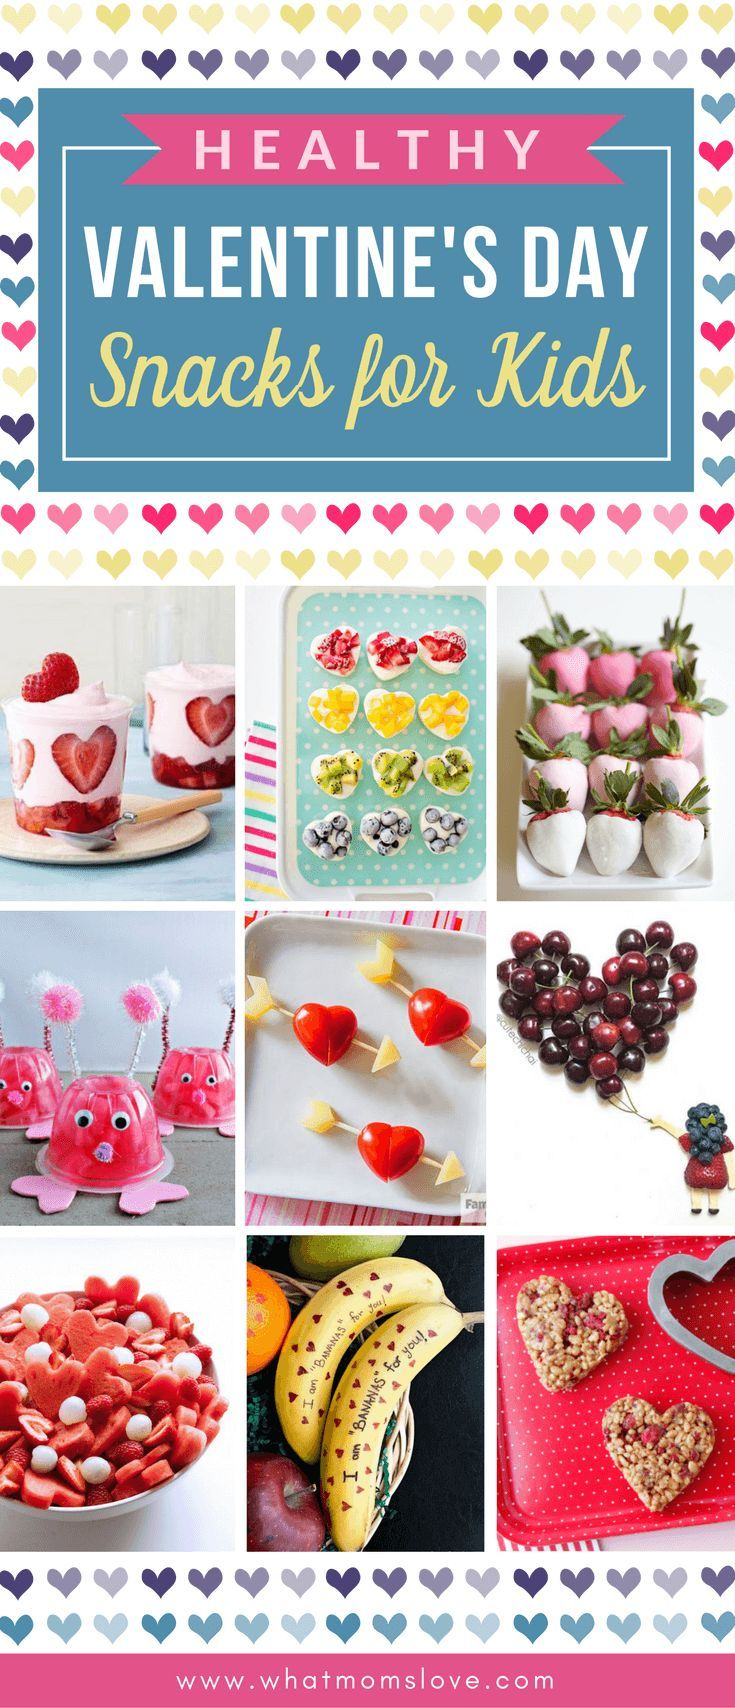 Healthy Valentines Day Snack Ideas for Kids | Easy and cute Valentines food ideas to make for lunch boxes or a school party - includes lots of sprinkles and fruit kabobs!